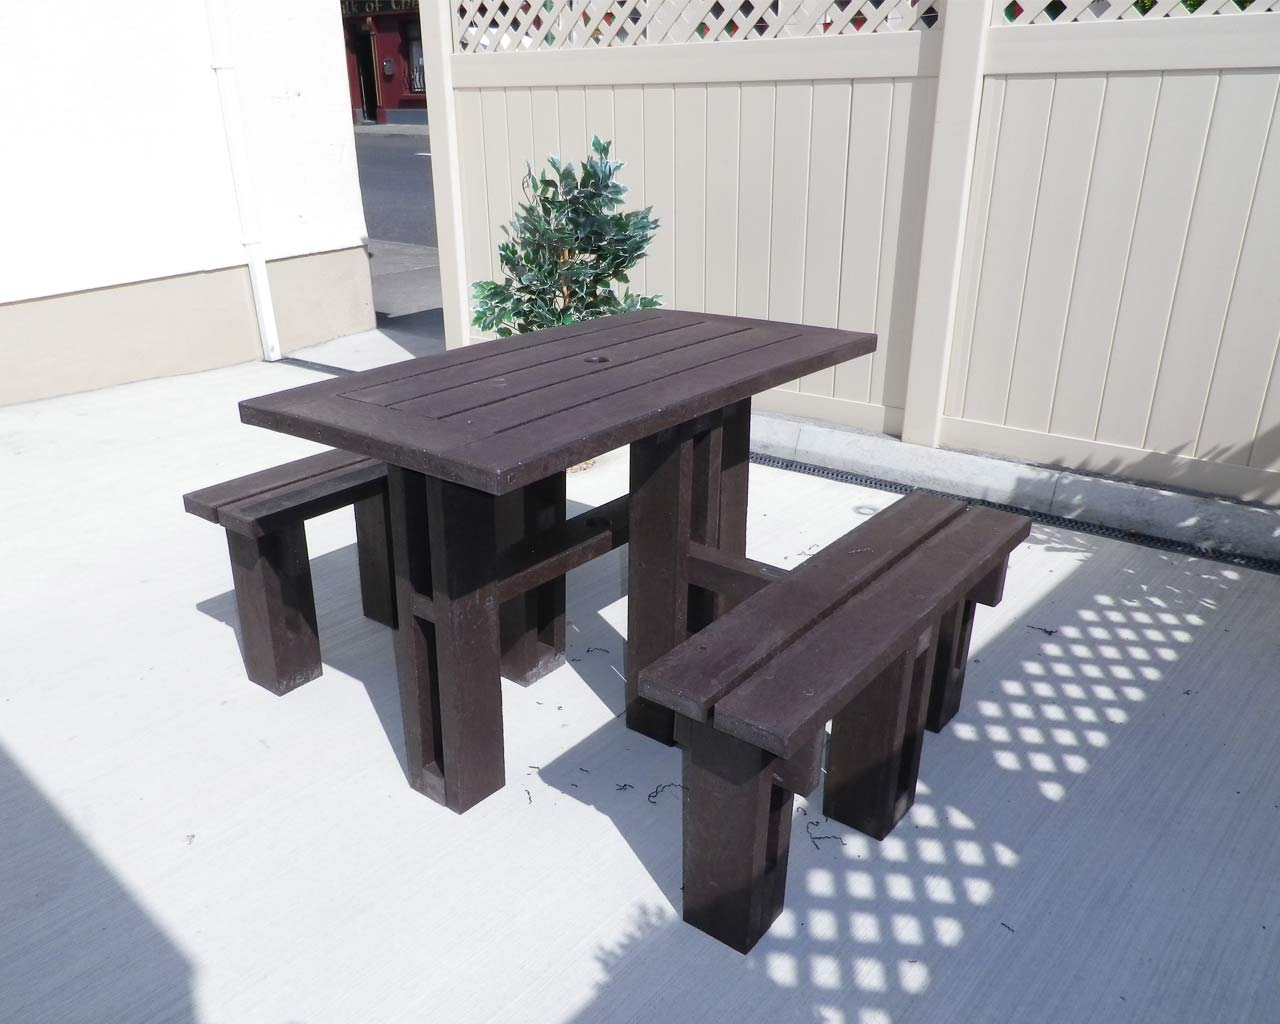 4 sided picnic table without back